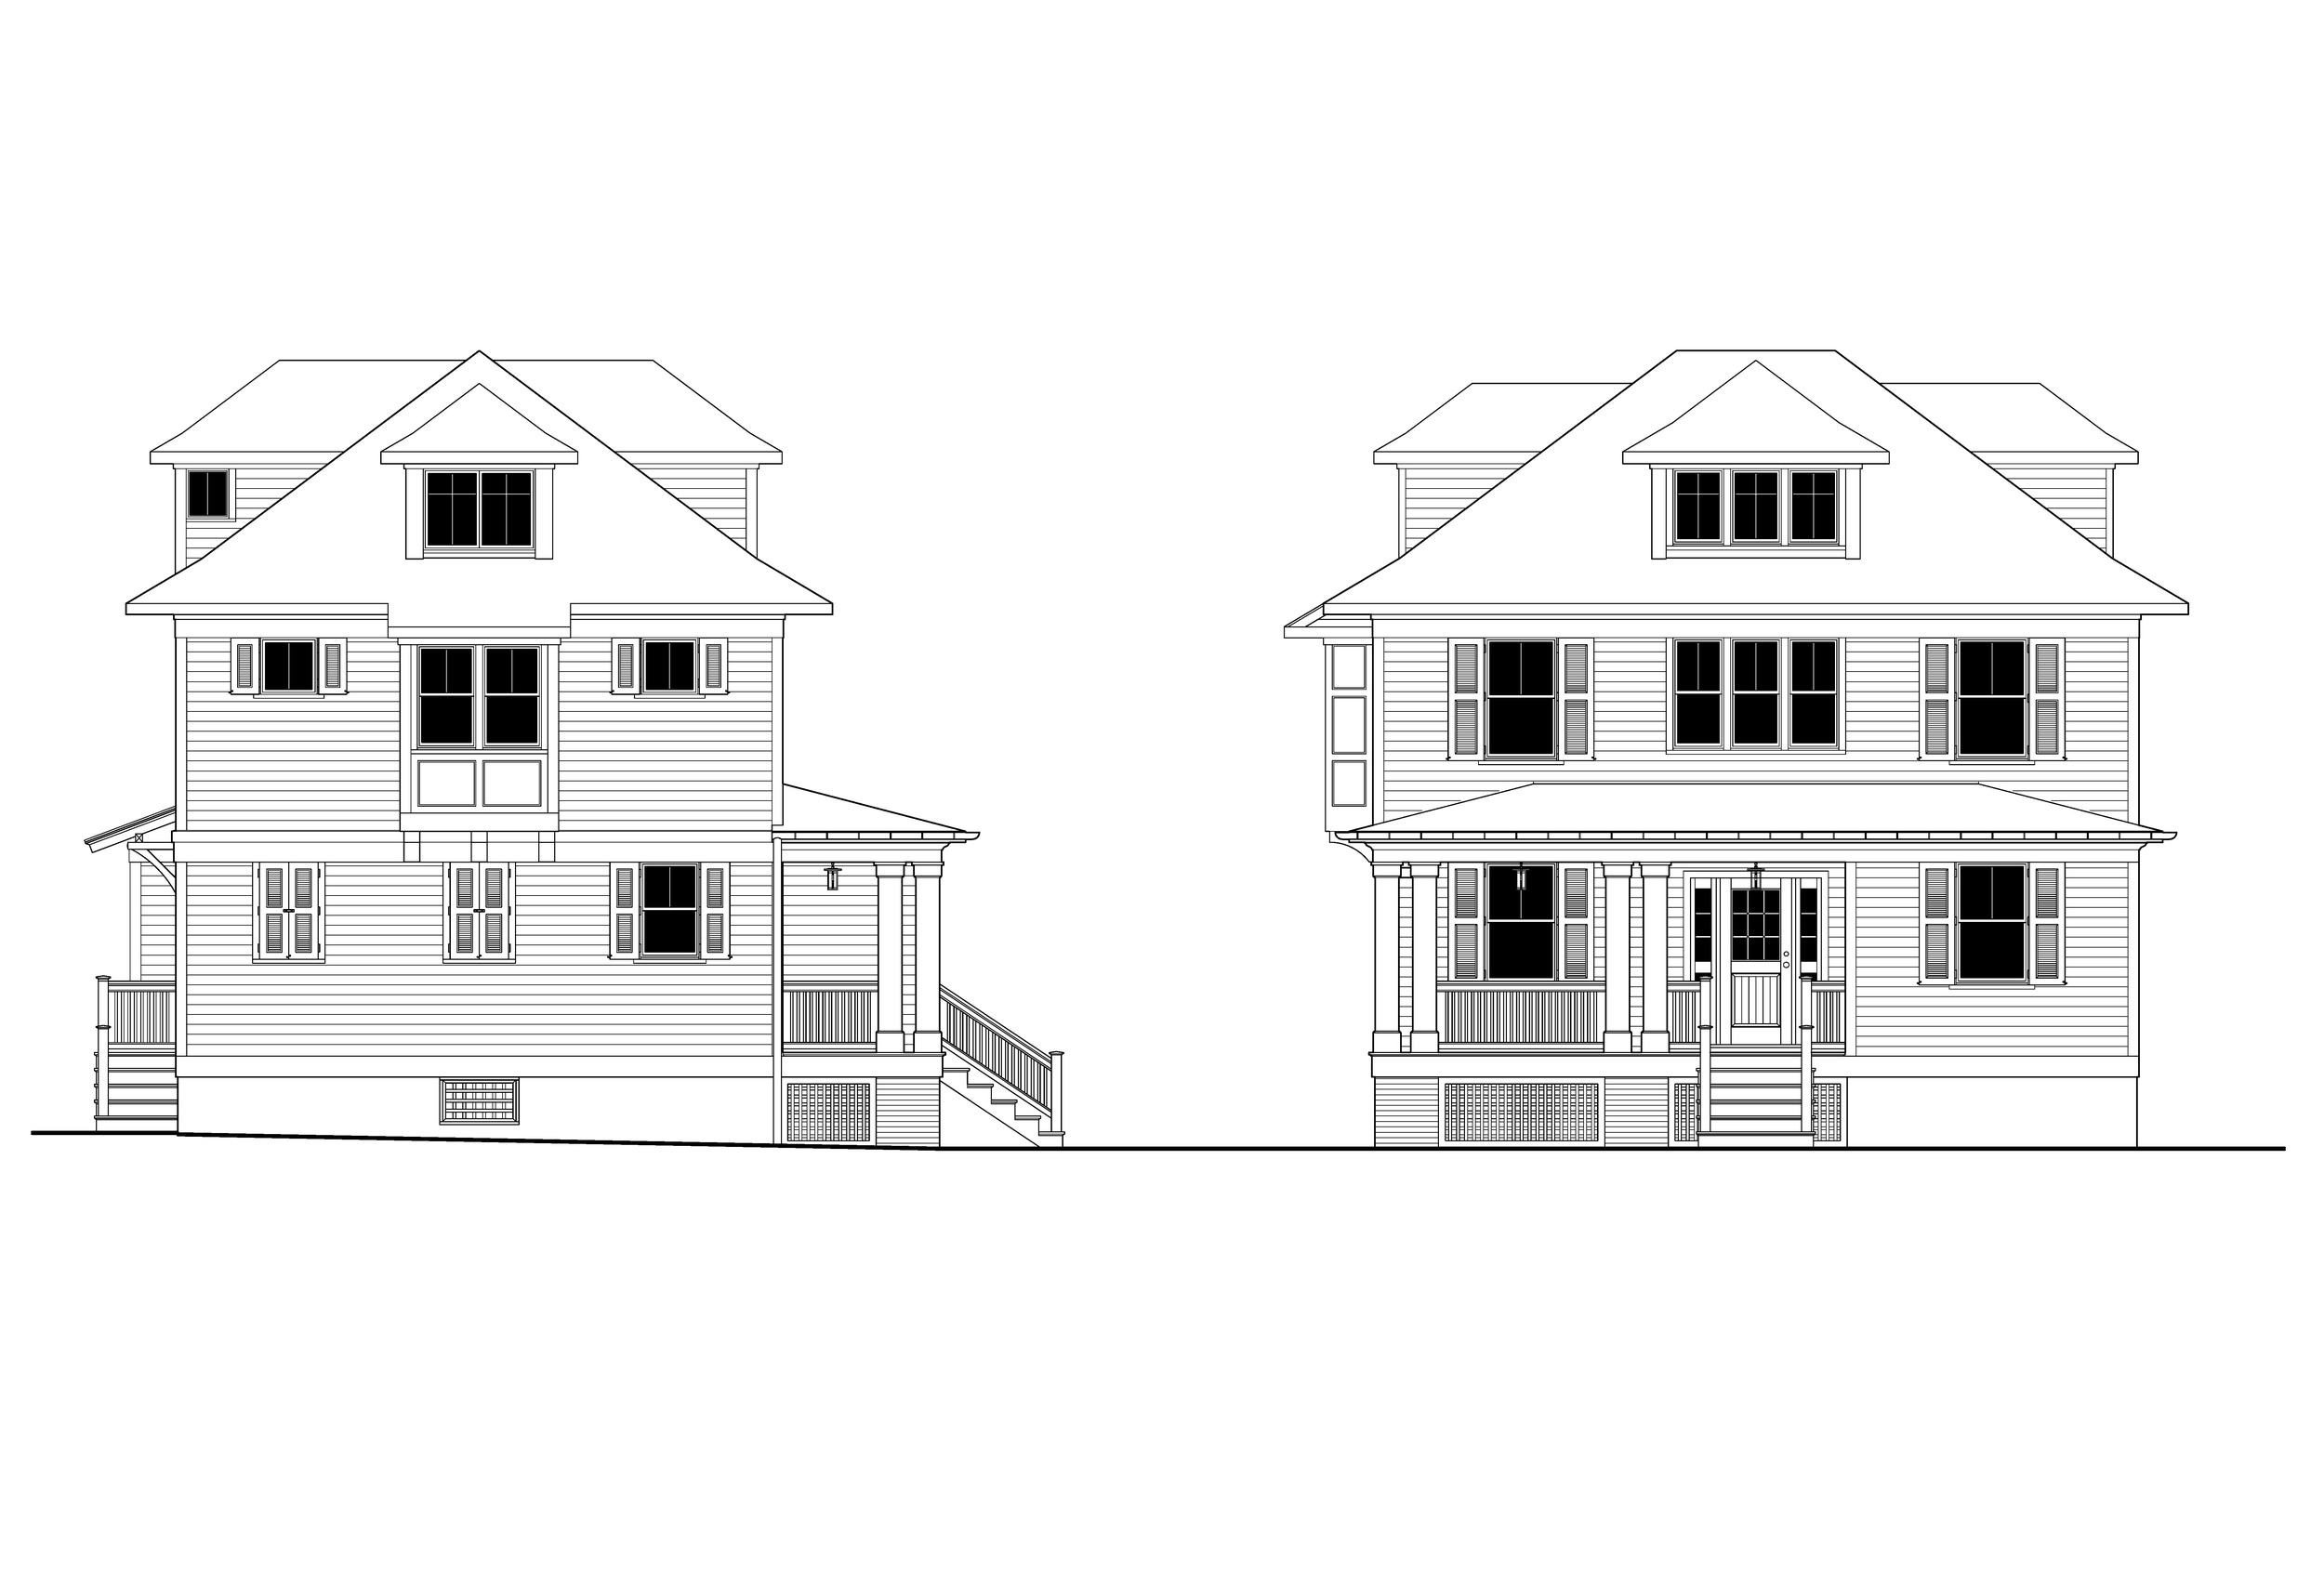 liotta_prelim_elevations_hi_res.jpg